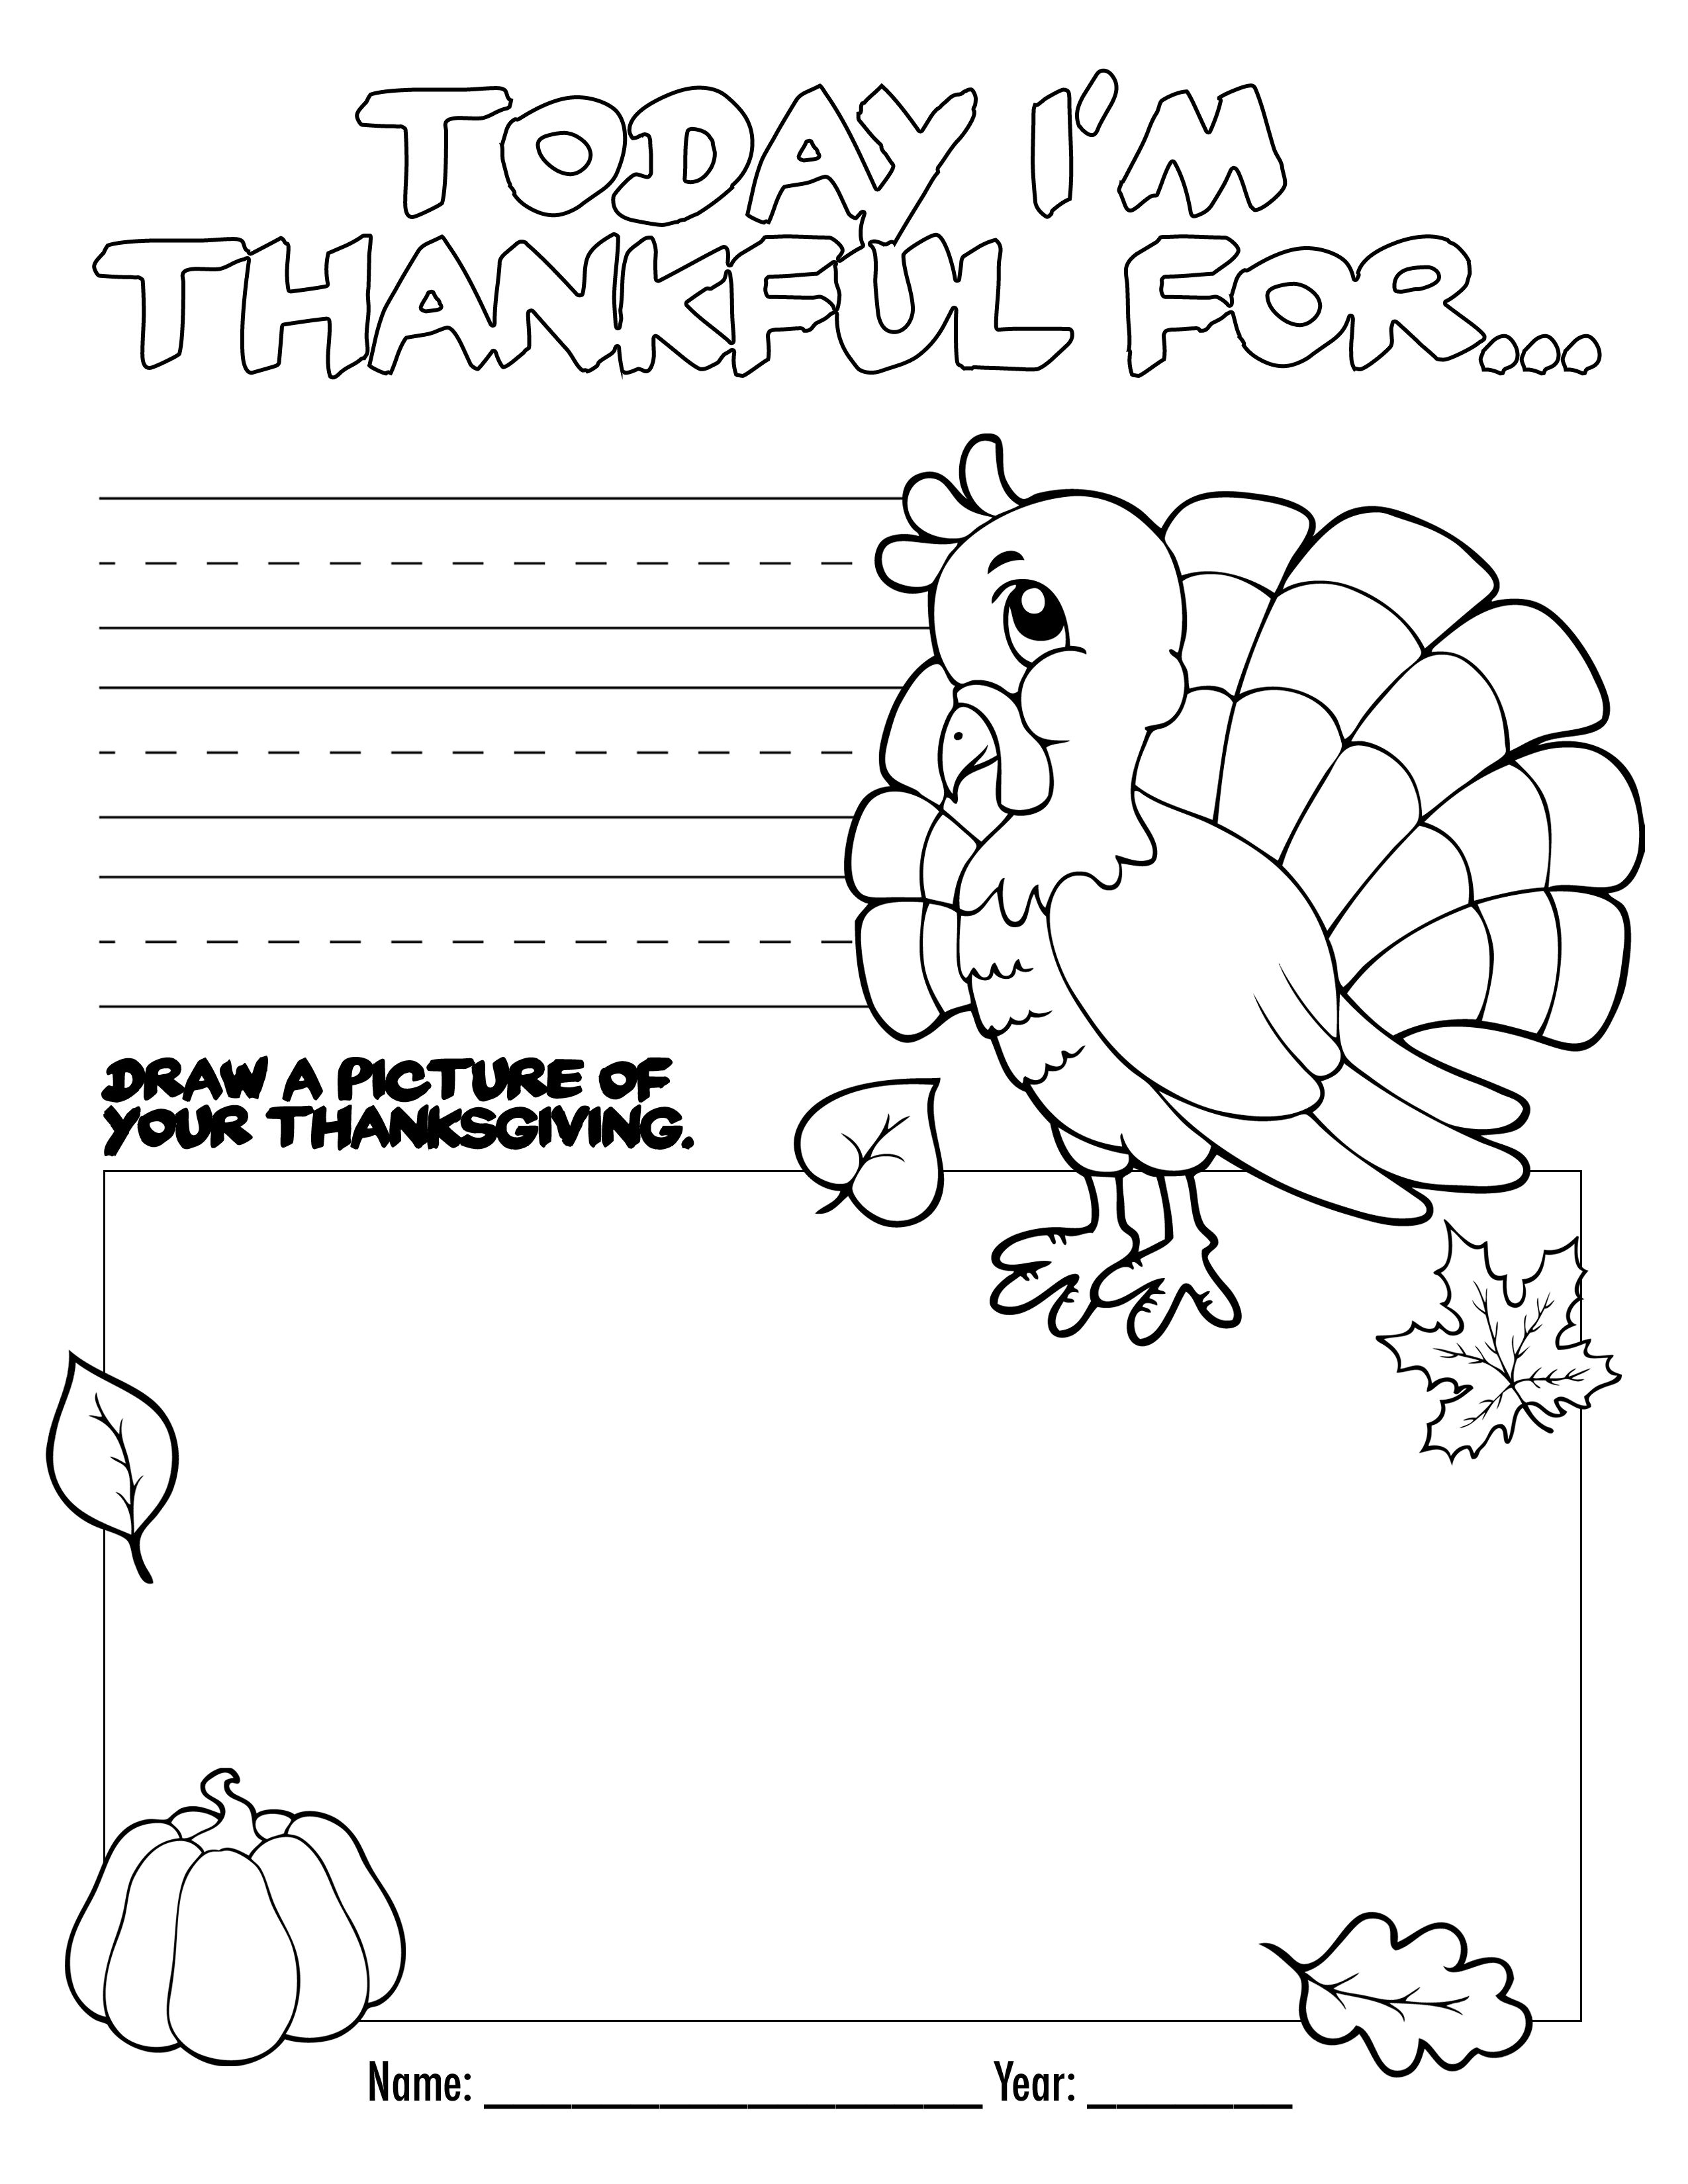 Thanksgiving Coloring Book Free Printable For The Kids!   Bloggers - Free Printable Thanksgiving Books